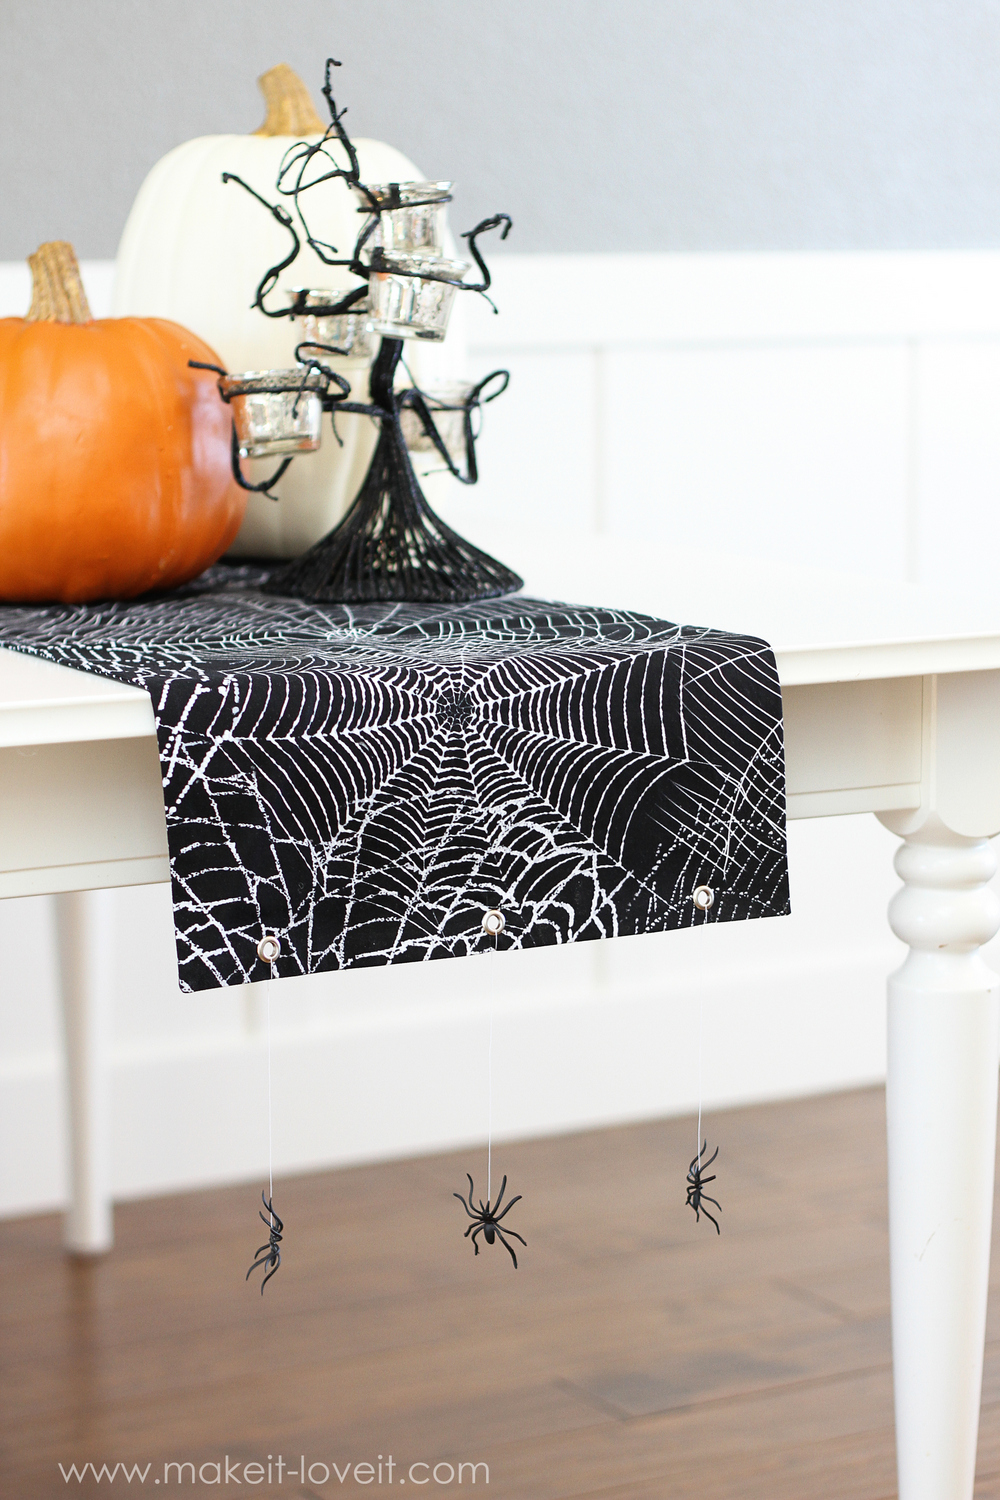 Halloween Table Runner with Hanging Spiders